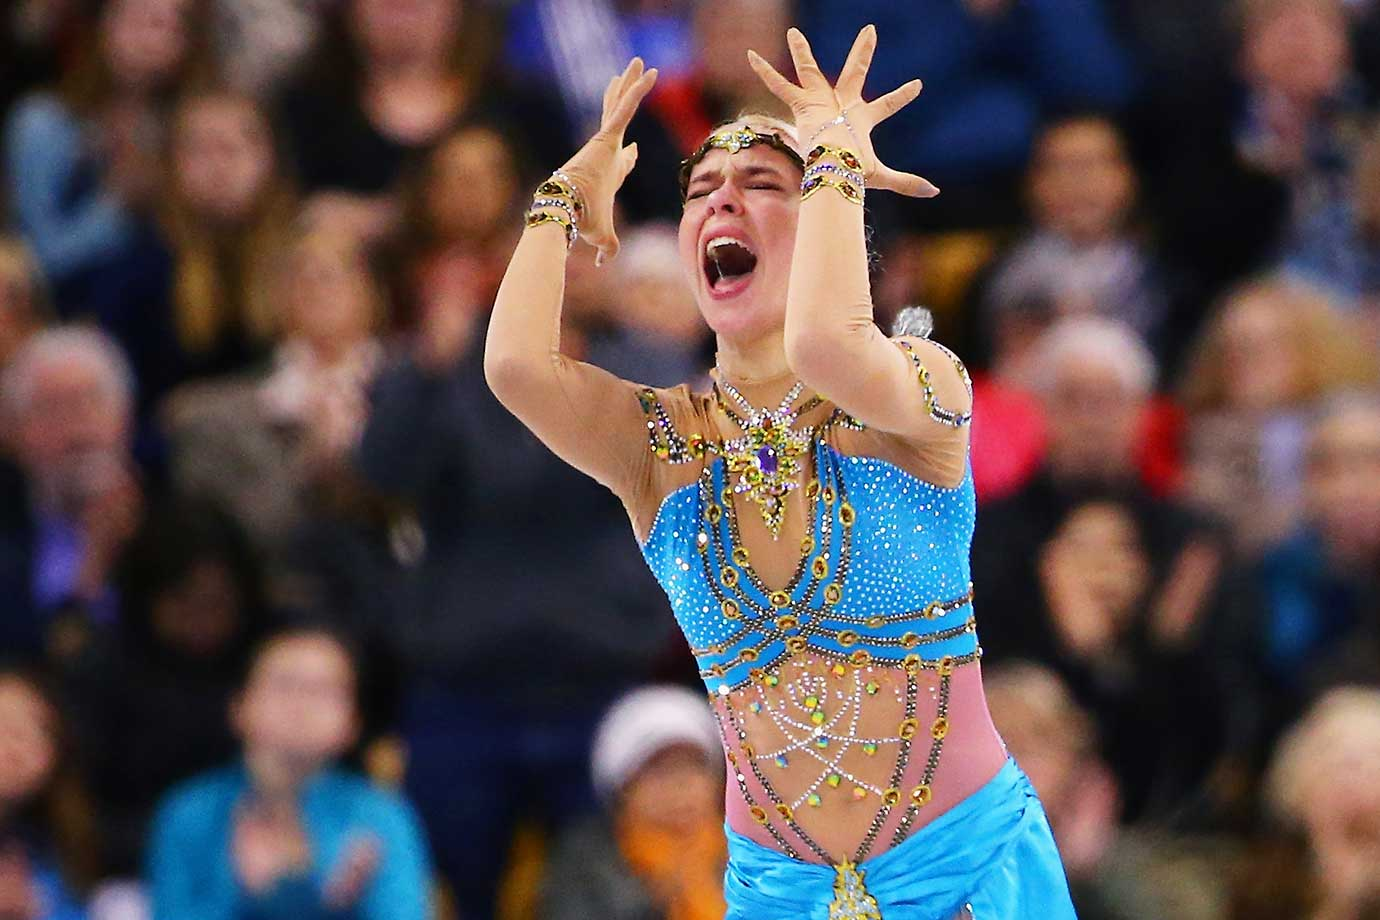 Third-place finisher Anna Pogorilaya of Russia reacts after completing her routine in the Ladies Free Skate program at the world championships in Boston.